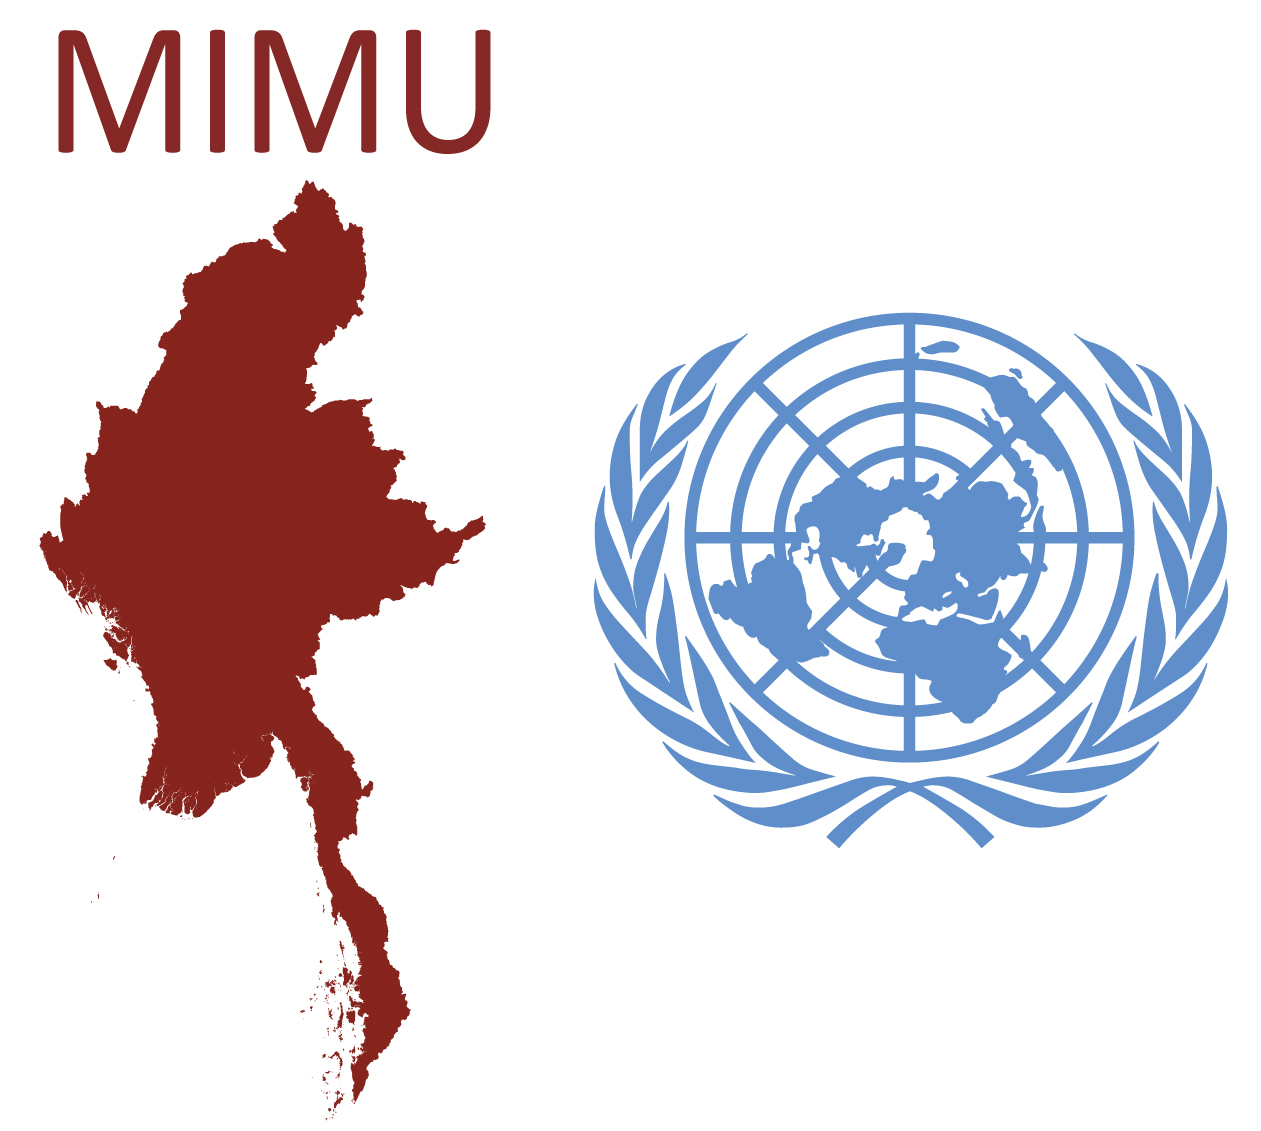 myanmar-information-management-unit-mimu